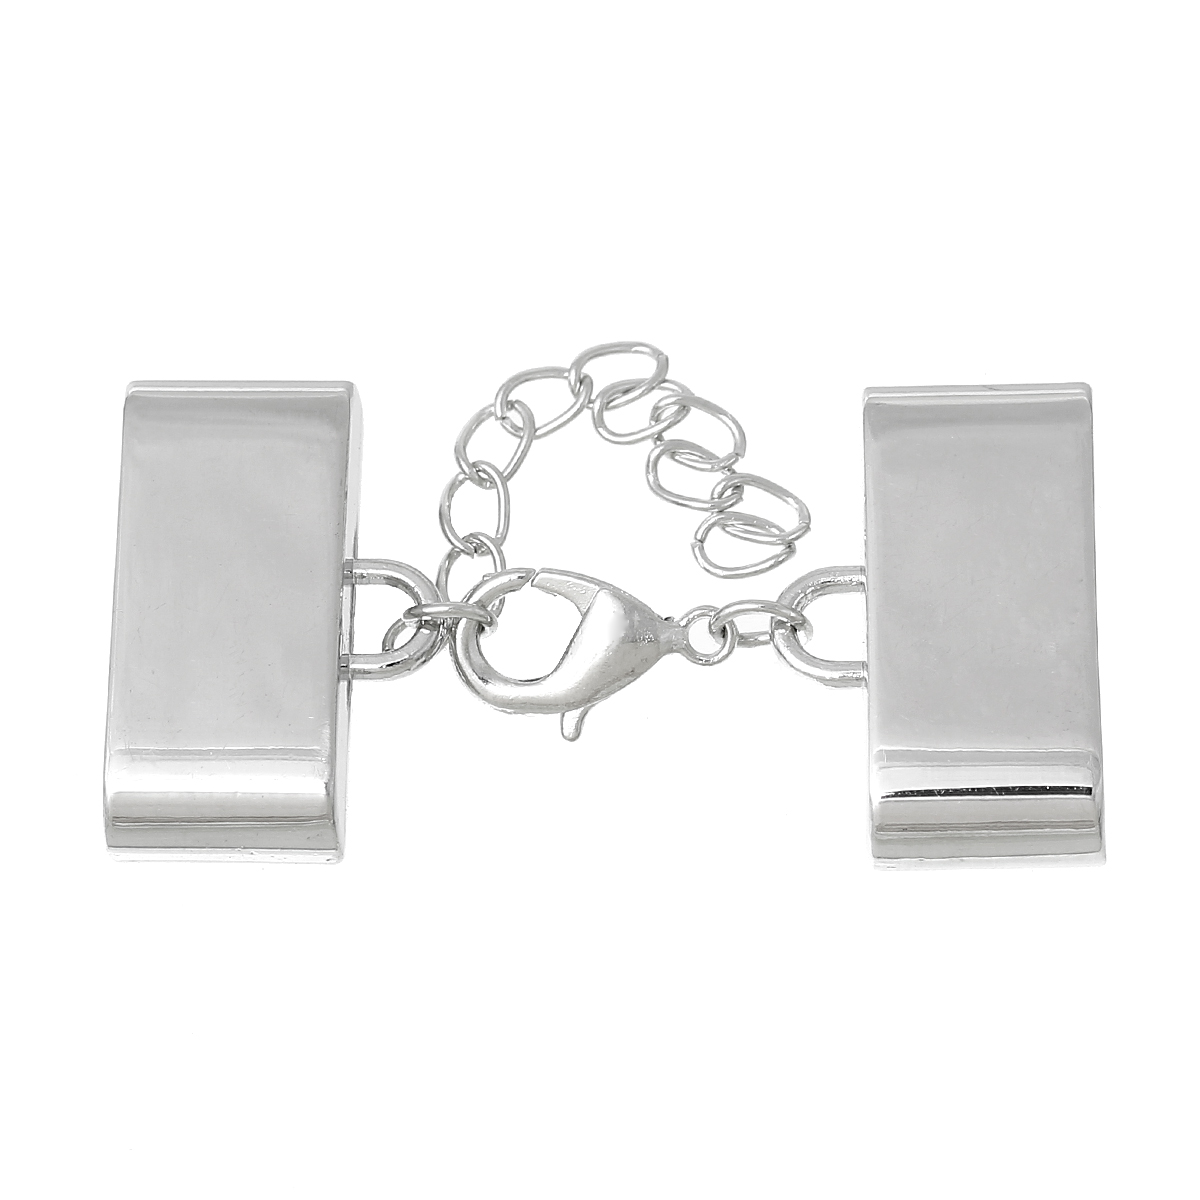 Embouts pour Cordons Collier avec Fermoir Mousqueton et Chaîne d\'Extension Rectangle  27x17mm